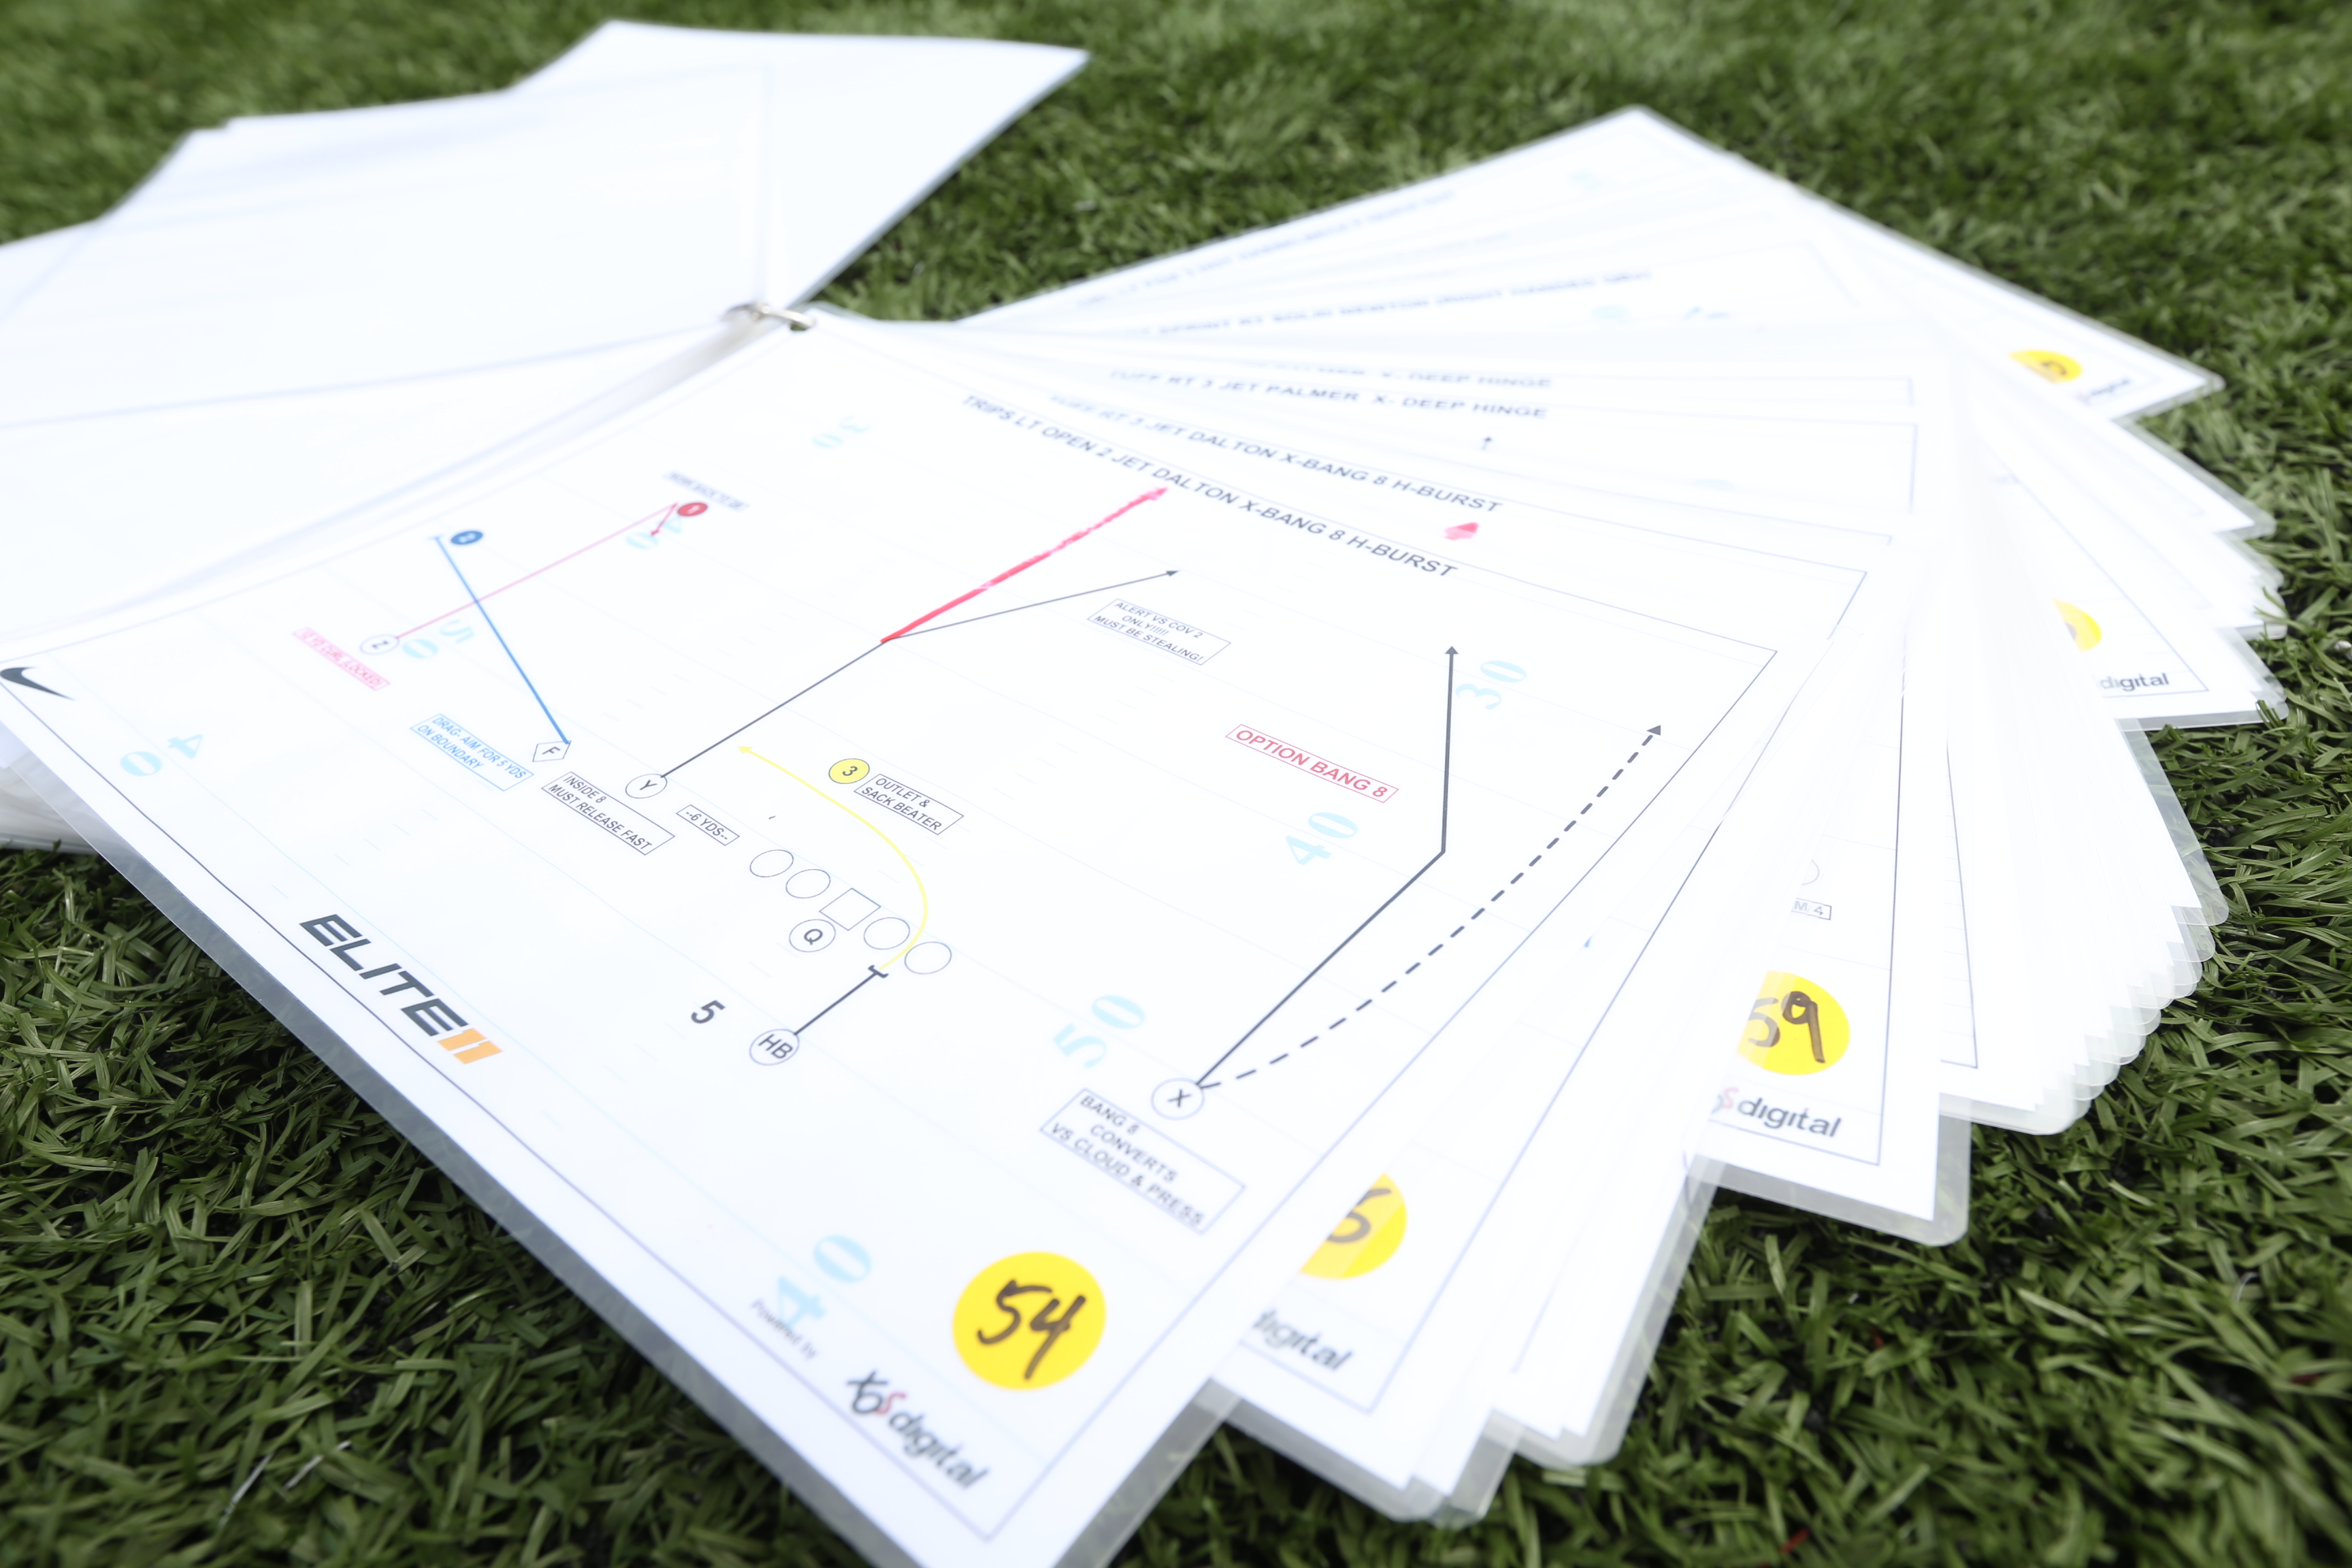 Elite 11 Playbook